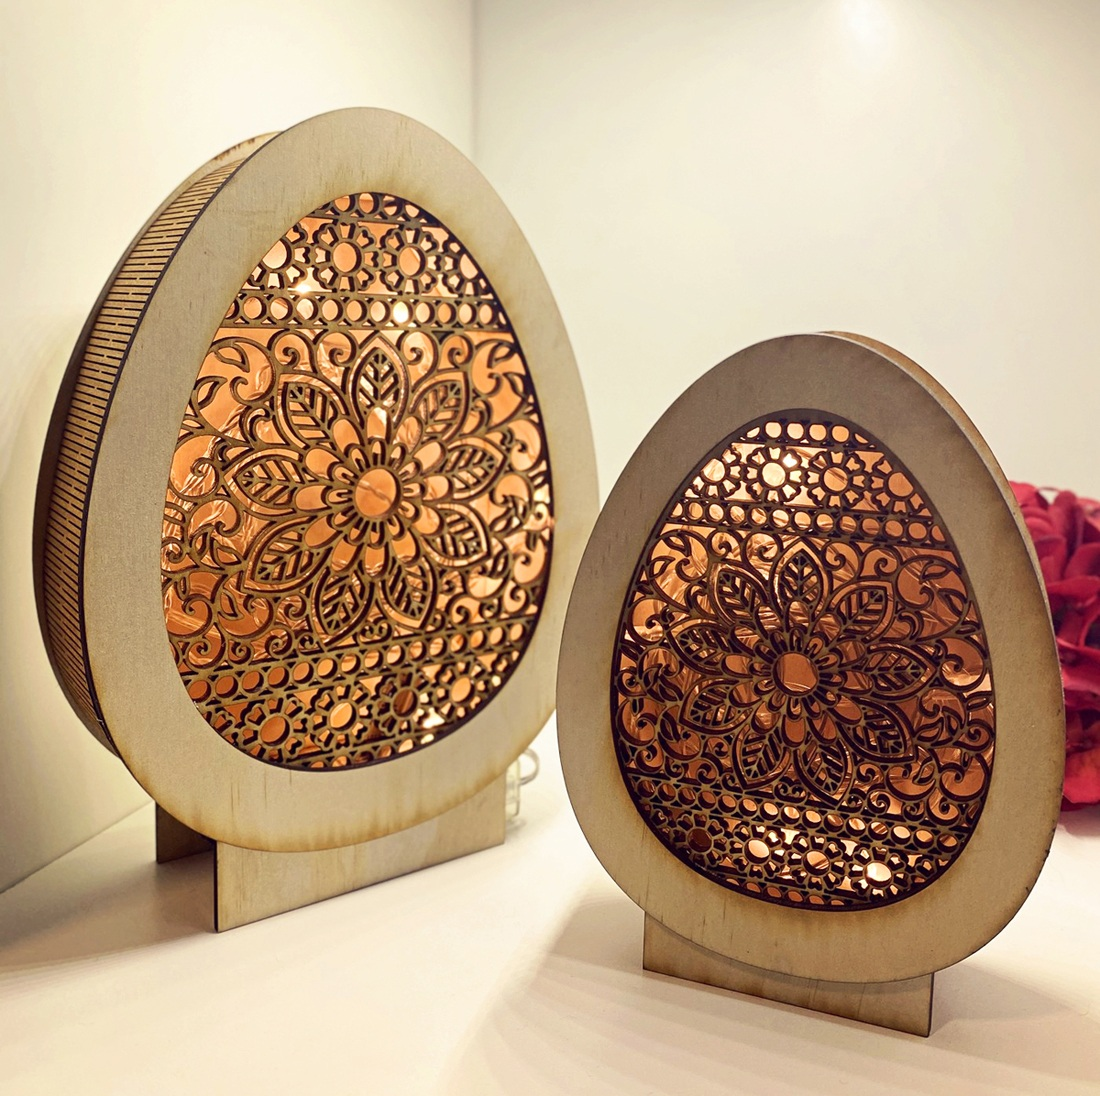 Egg-shaped timber light boxes laser cut with detailed floral designs